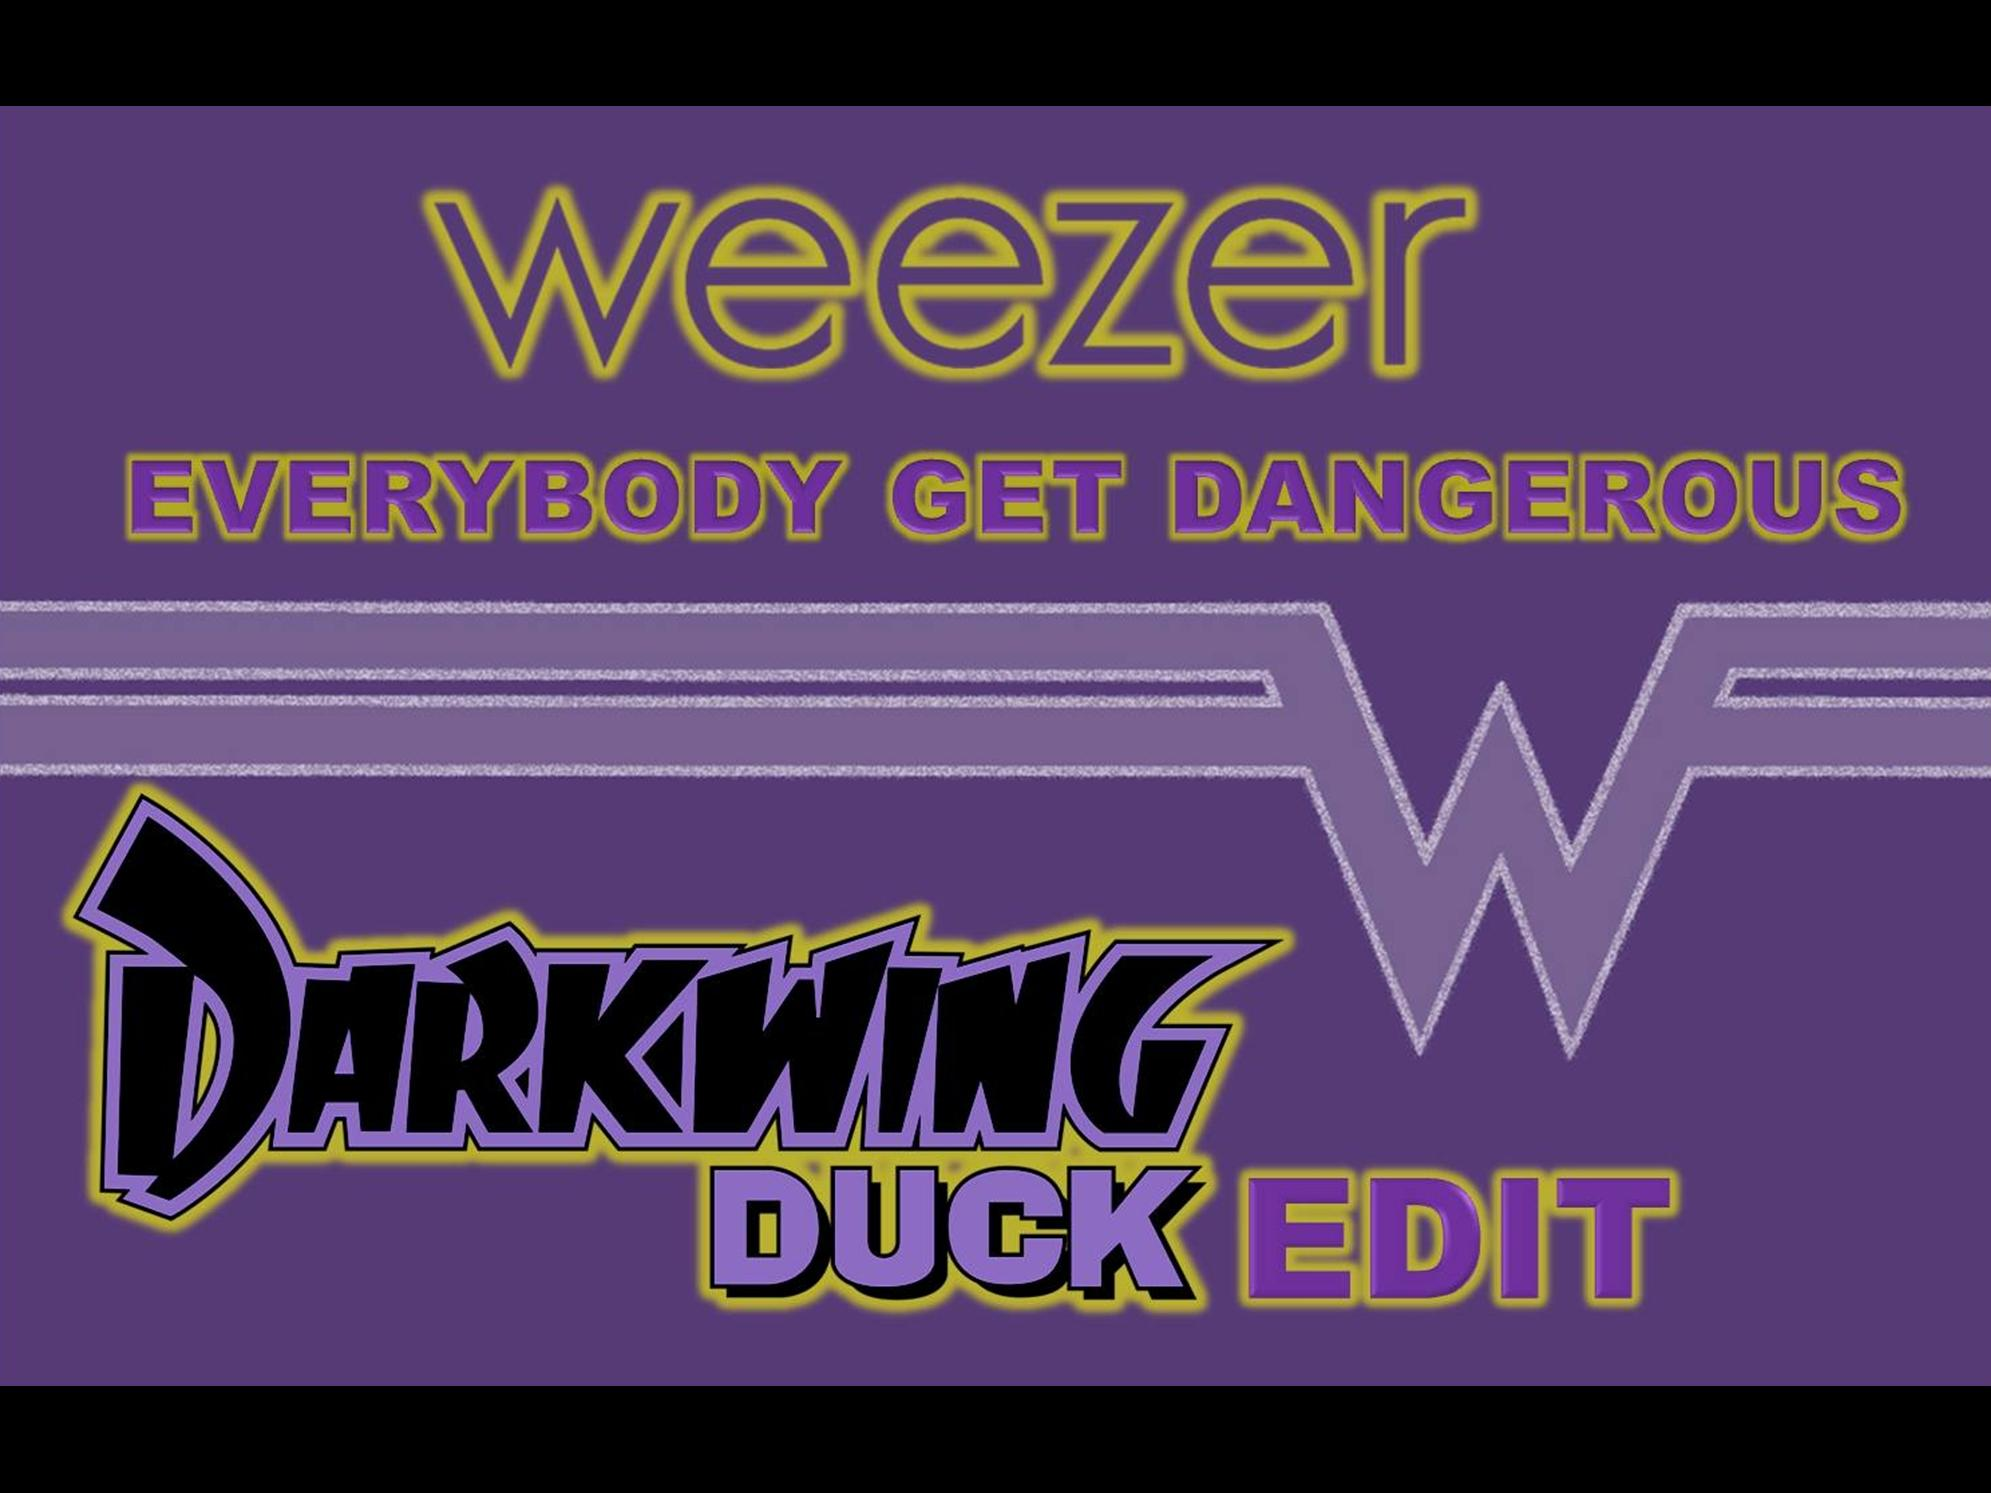 Weezer- Everybody Get Dangerous (Darkwing Duck Edit)